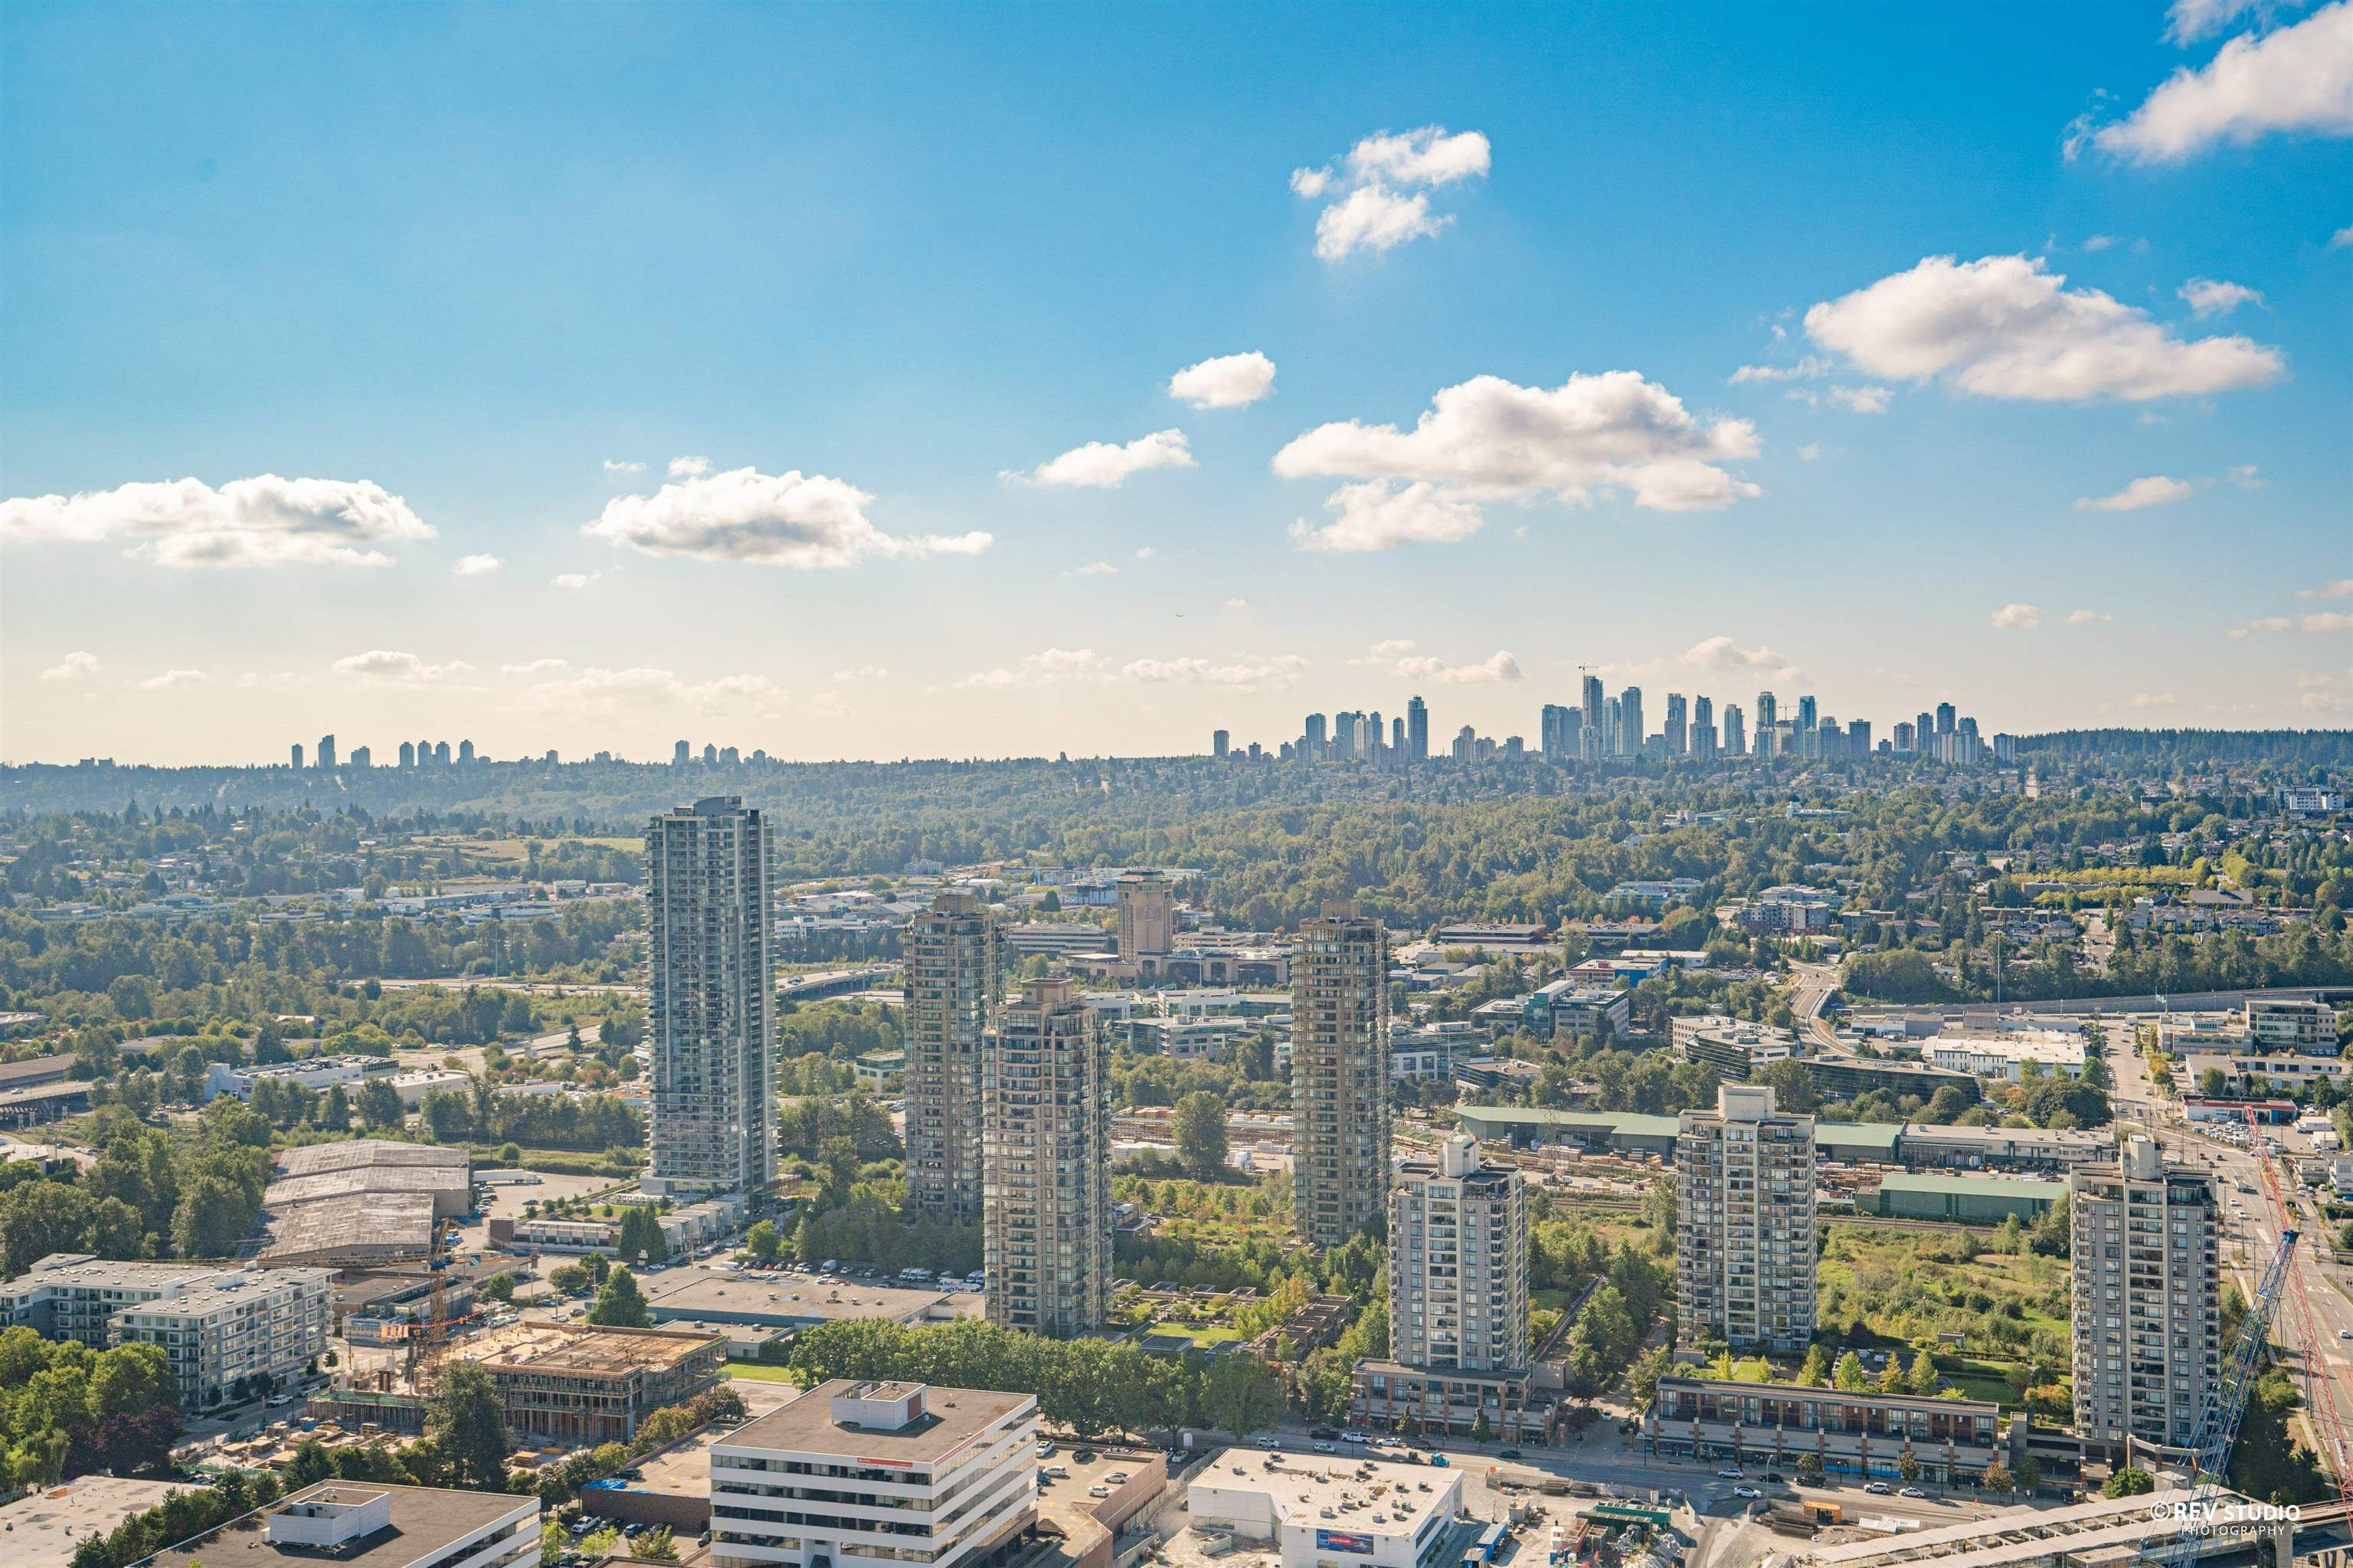 """Main Photo: 4010 1788 GILMORE Avenue in Burnaby: Brentwood Park Condo for sale in """"ESCALA"""" (Burnaby North)  : MLS®# R2615776"""